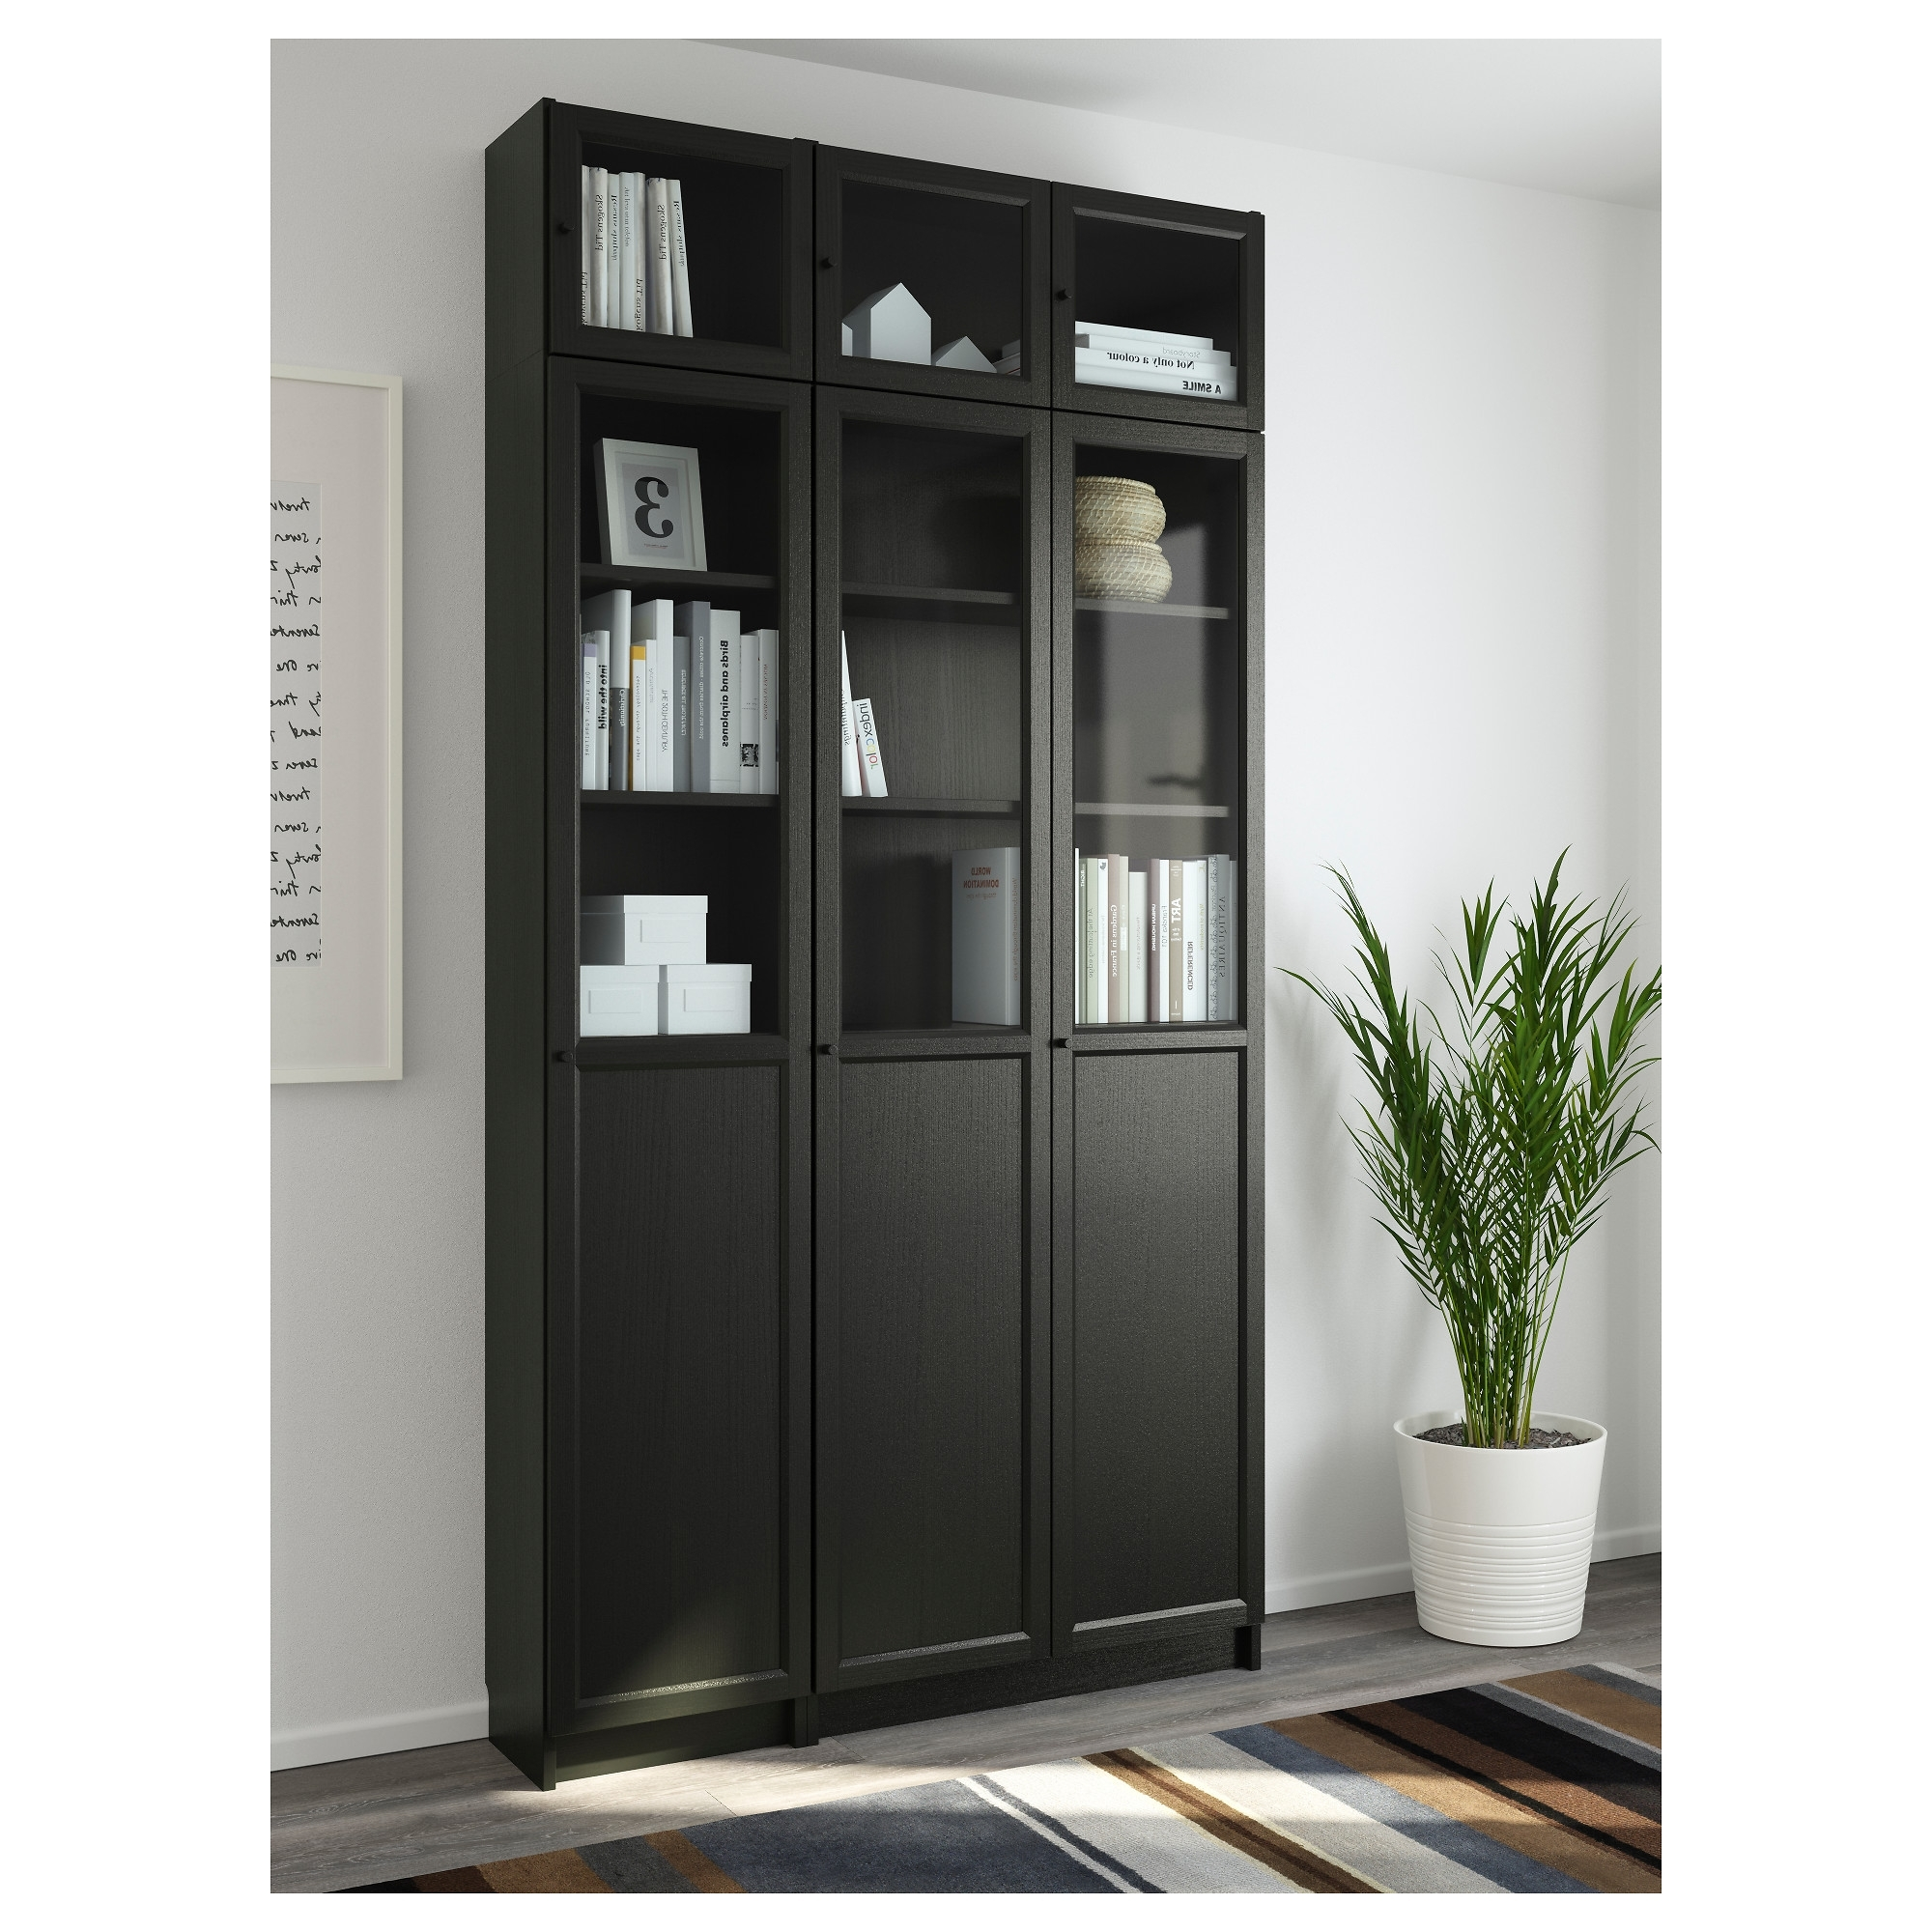 Best And Newest Black Bookcases With Doors Regarding Billy / Oxberg Bookcase – Black Brown/glass – Ikea (View 14 of 15)